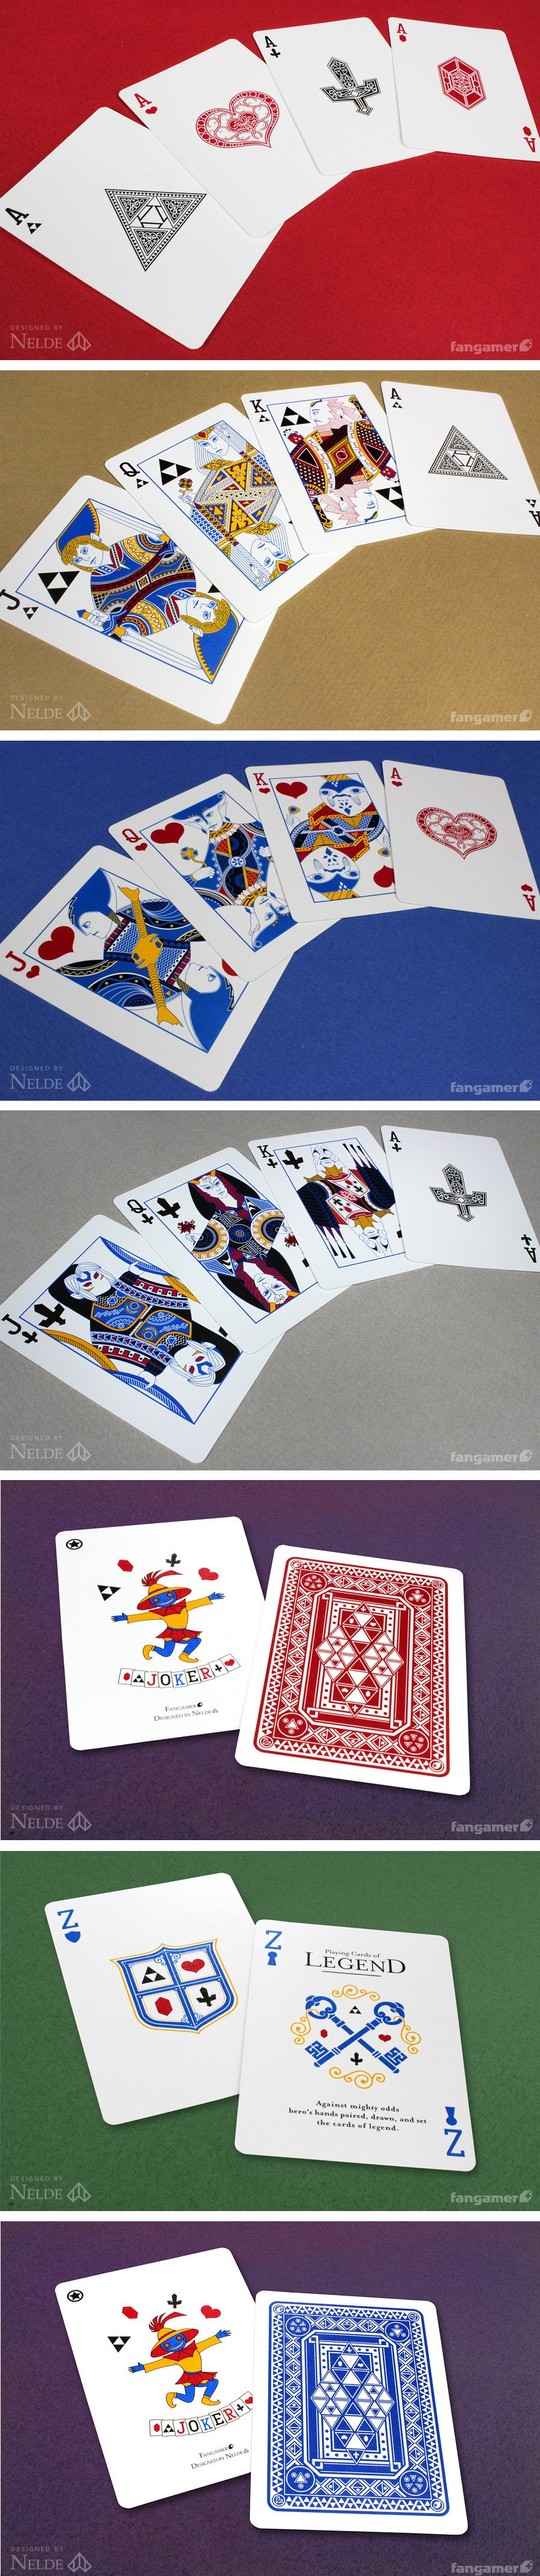 Playing Cards Legend Playing Cards by the US Playing